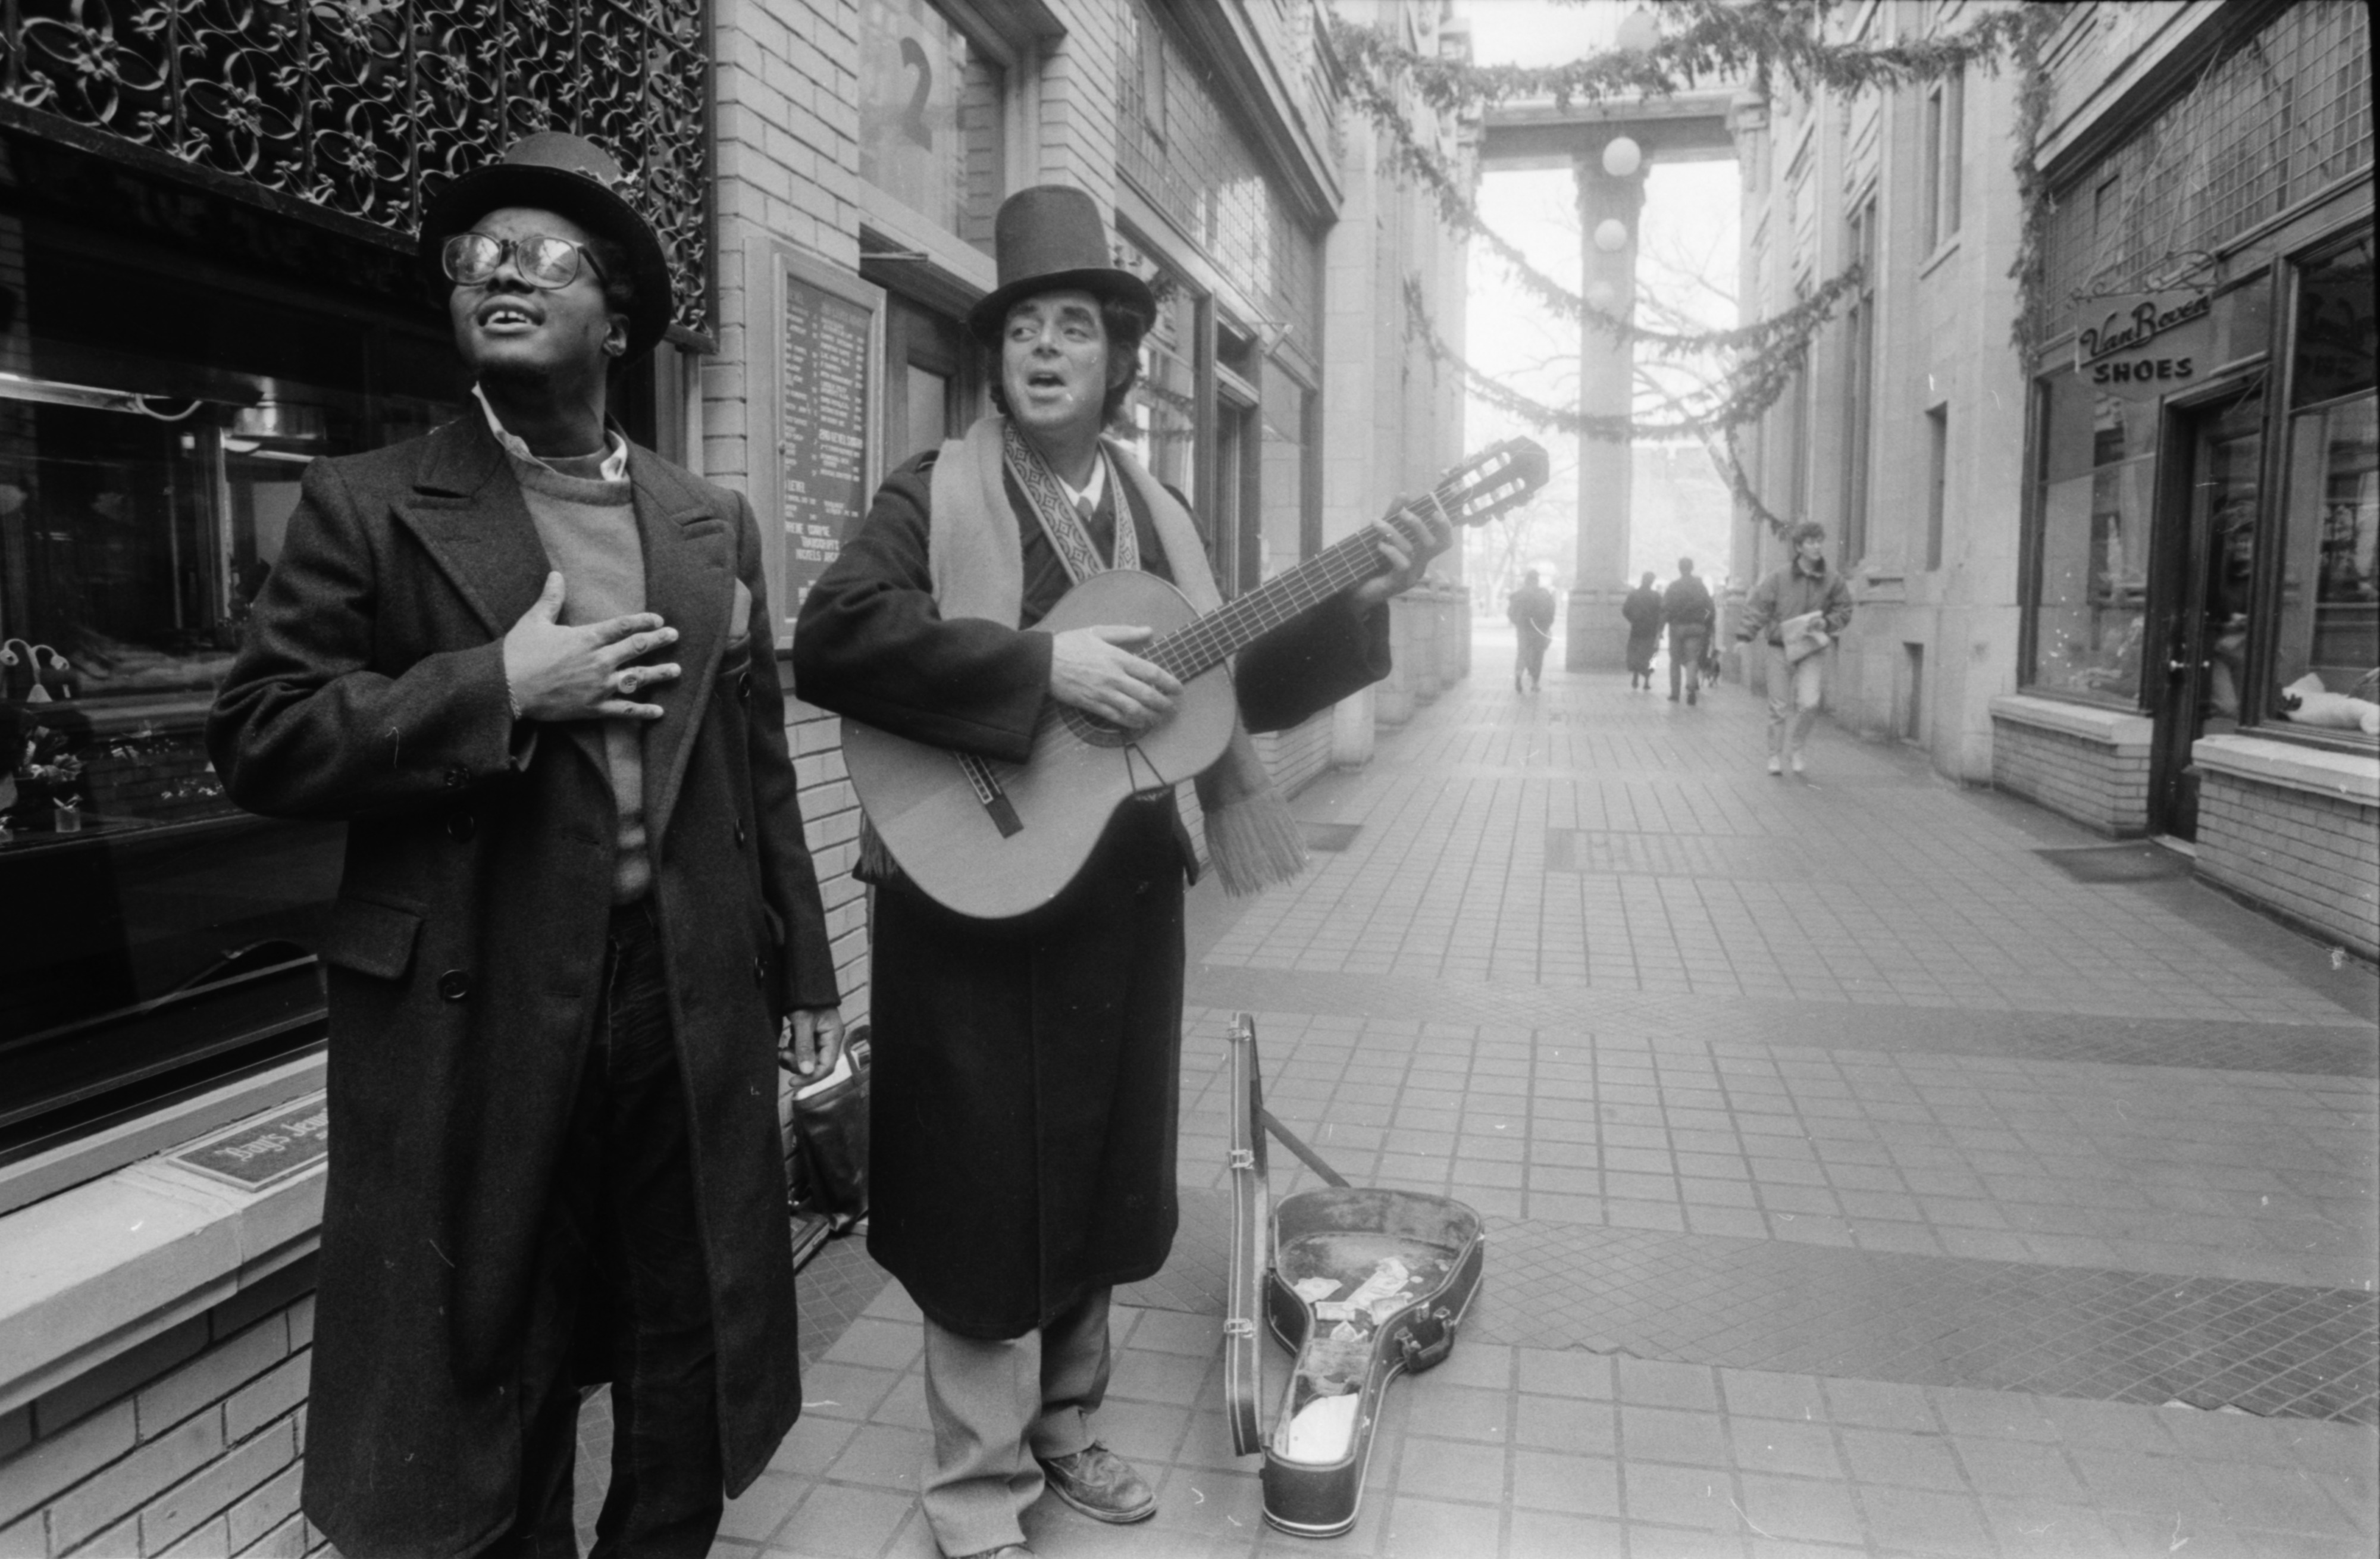 Seasonal Serenade Greets Shoppers In Nickels Arcade, December 1990 image